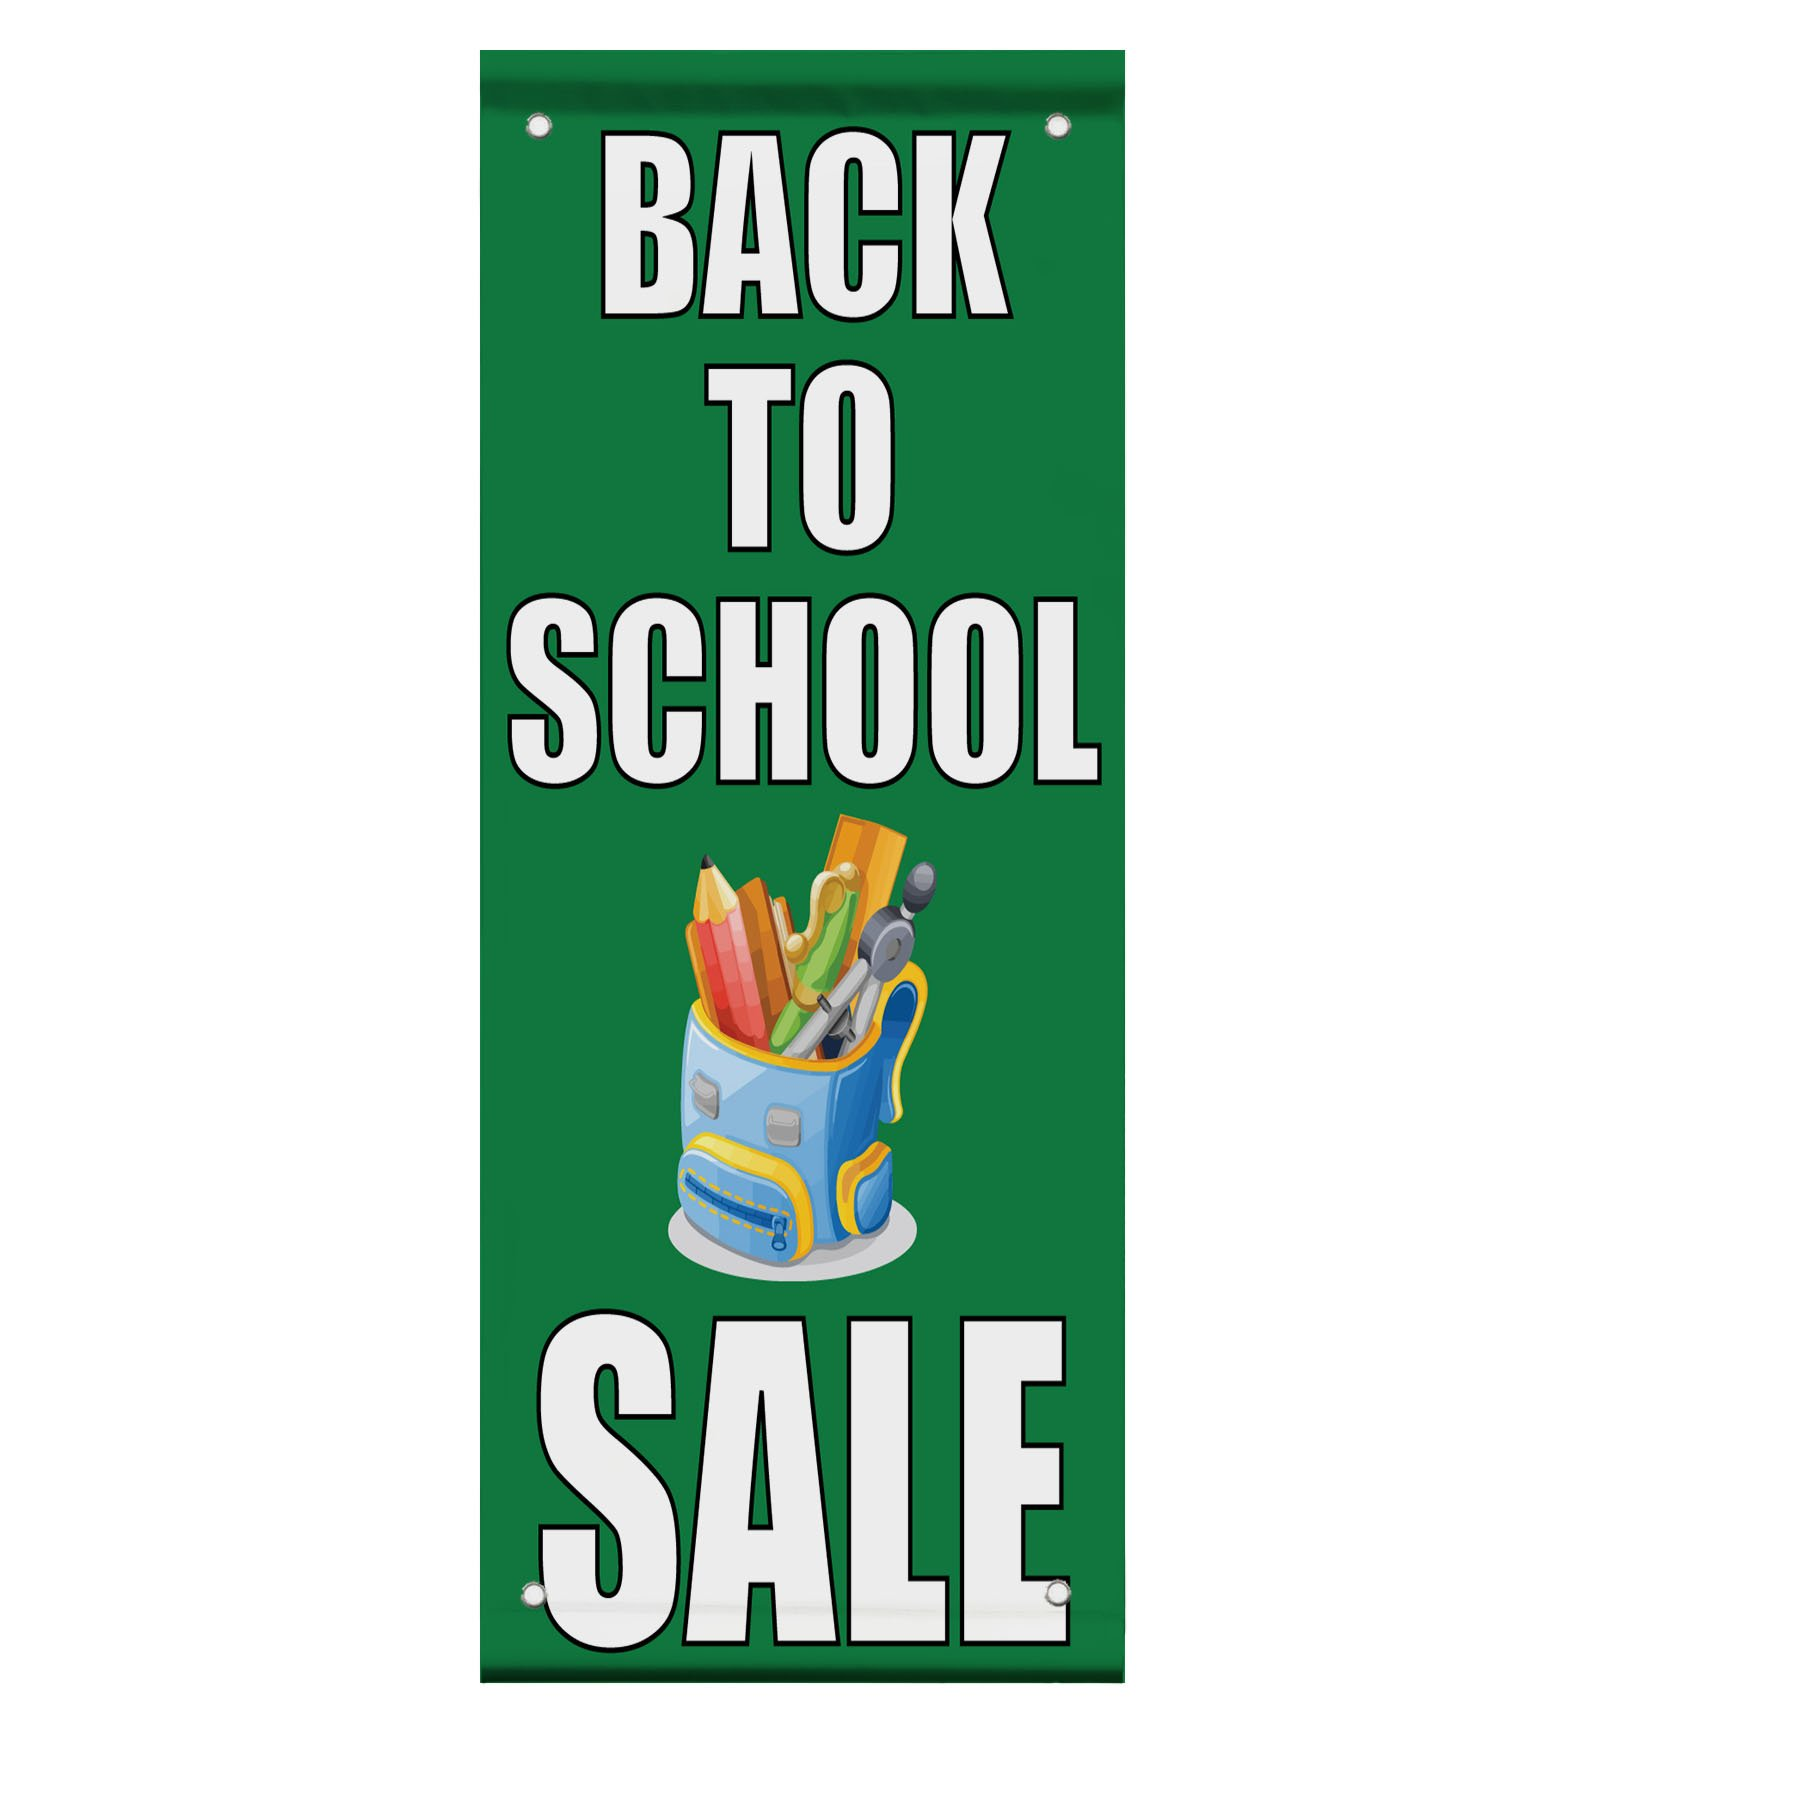 Back To School Sale Advertisement Double Sided Vertical Pole Banner Sign 24 in x 36 in w/ Wall Bracket